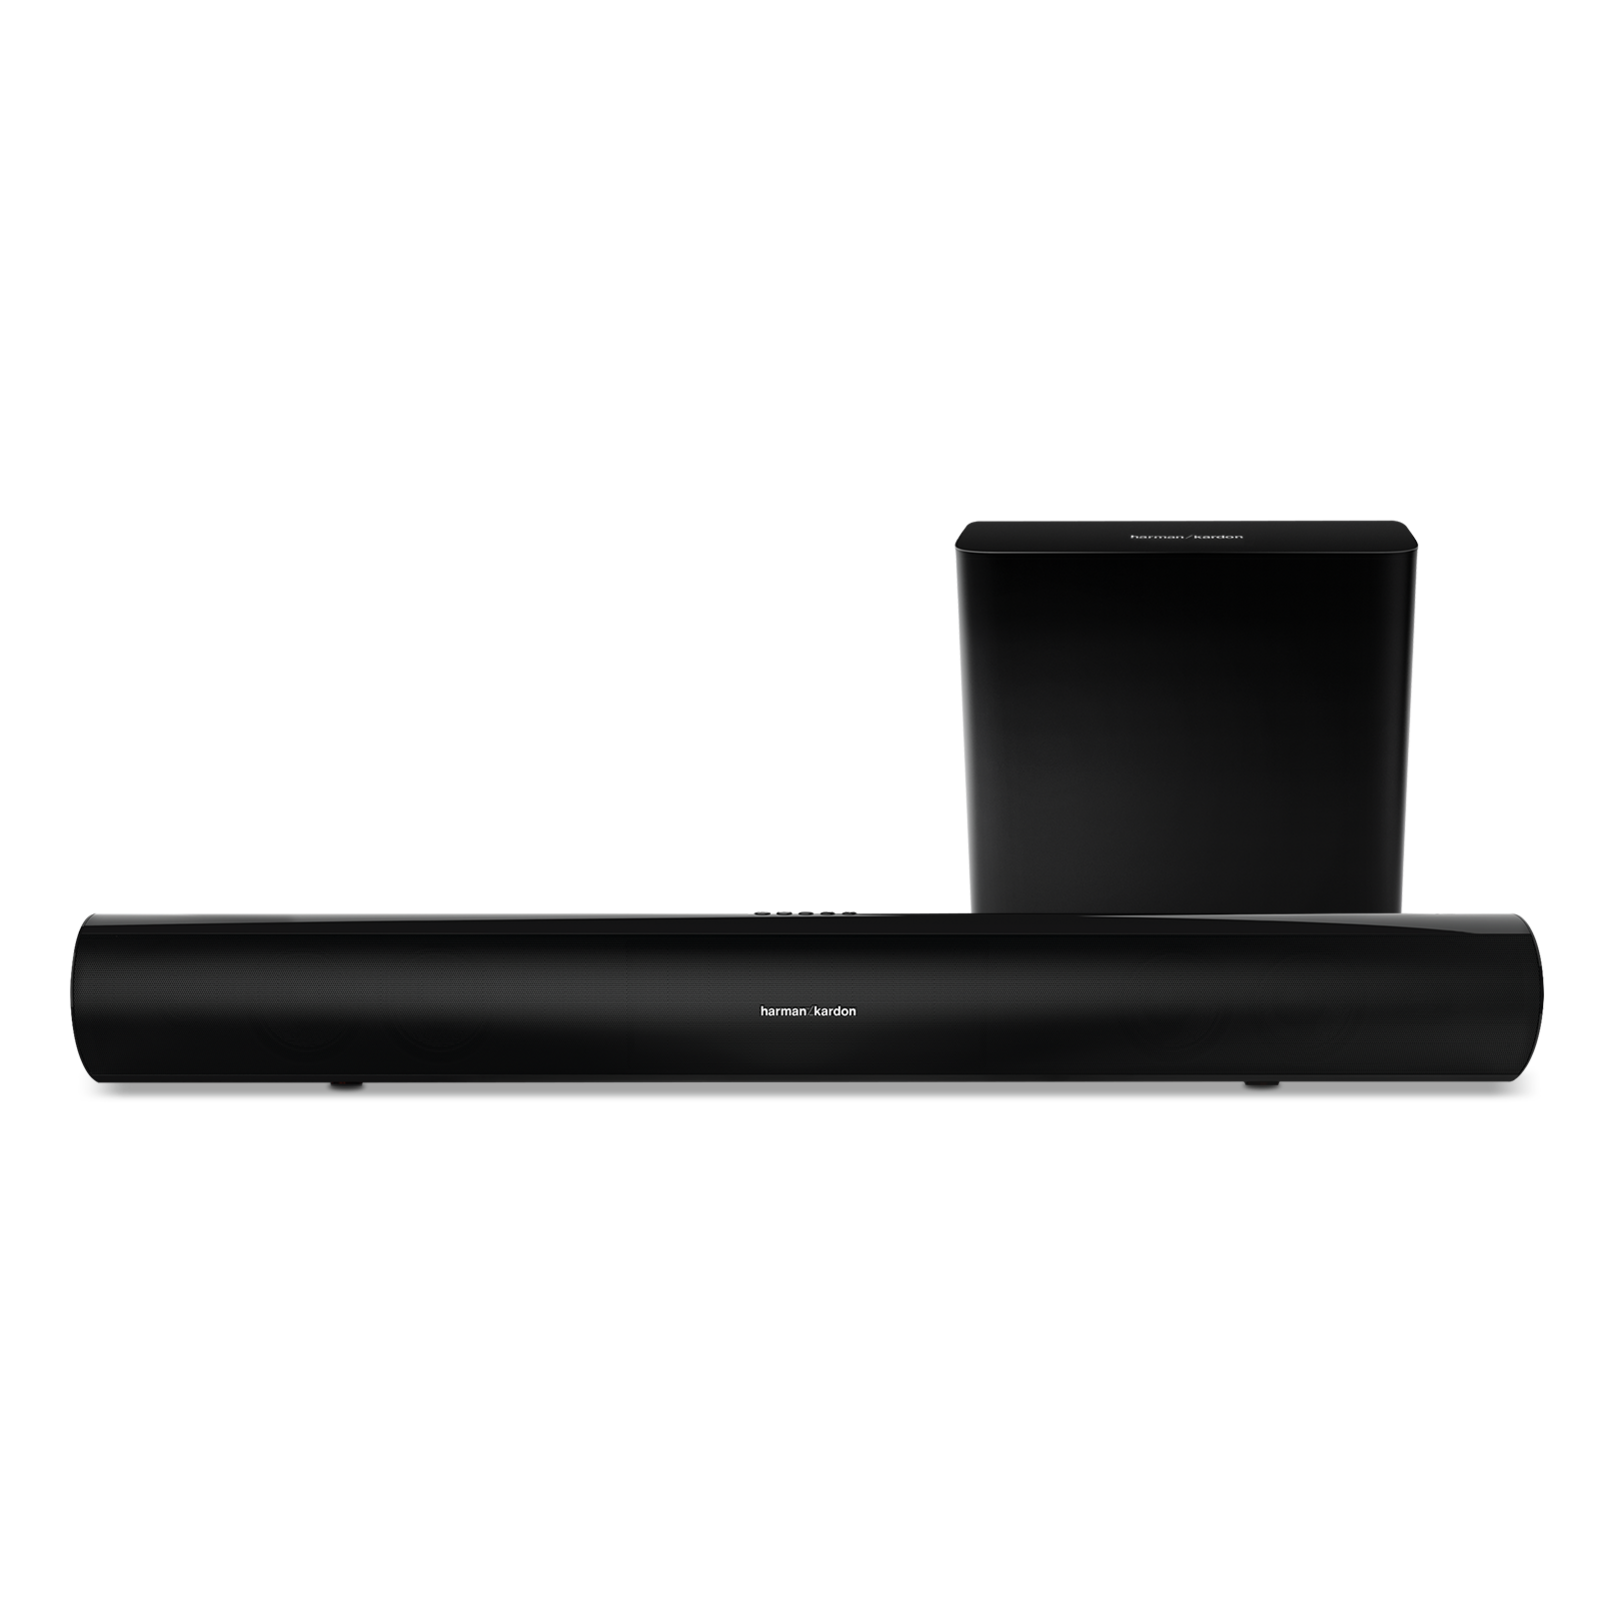 ... Soundbar with Bluetooth and Powered Wireless Subwoofer. Source · SB 26